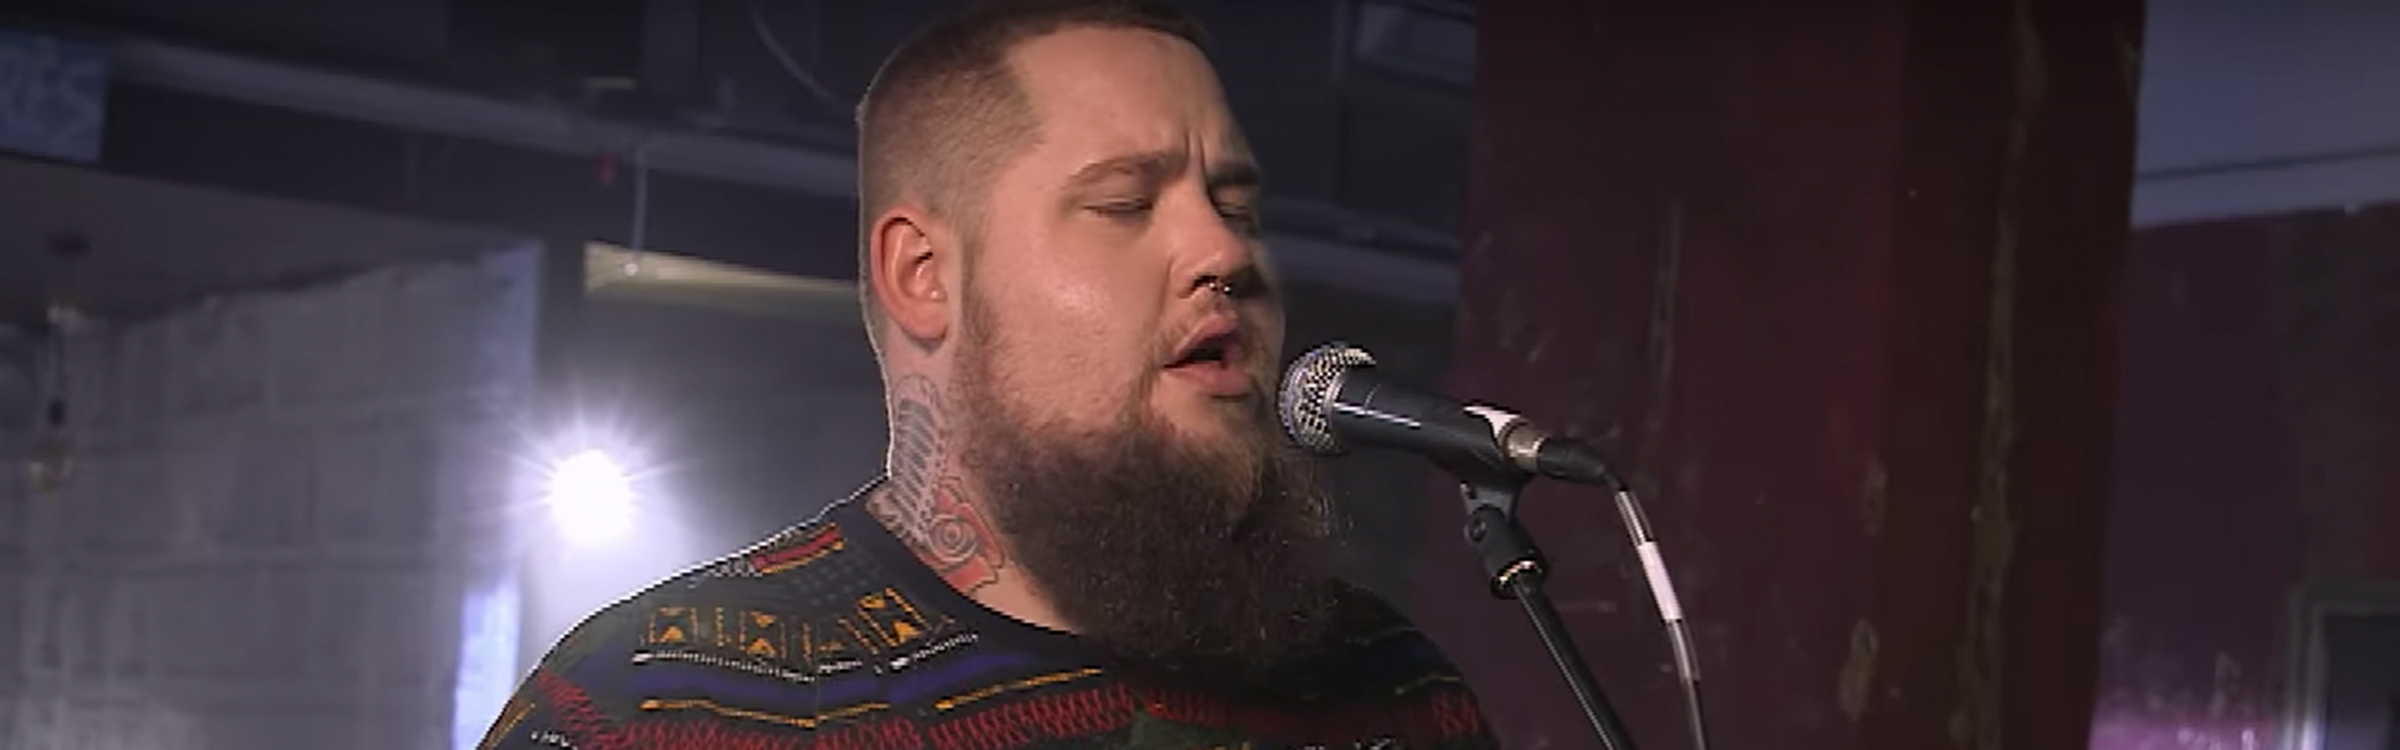 Header rag n bone man